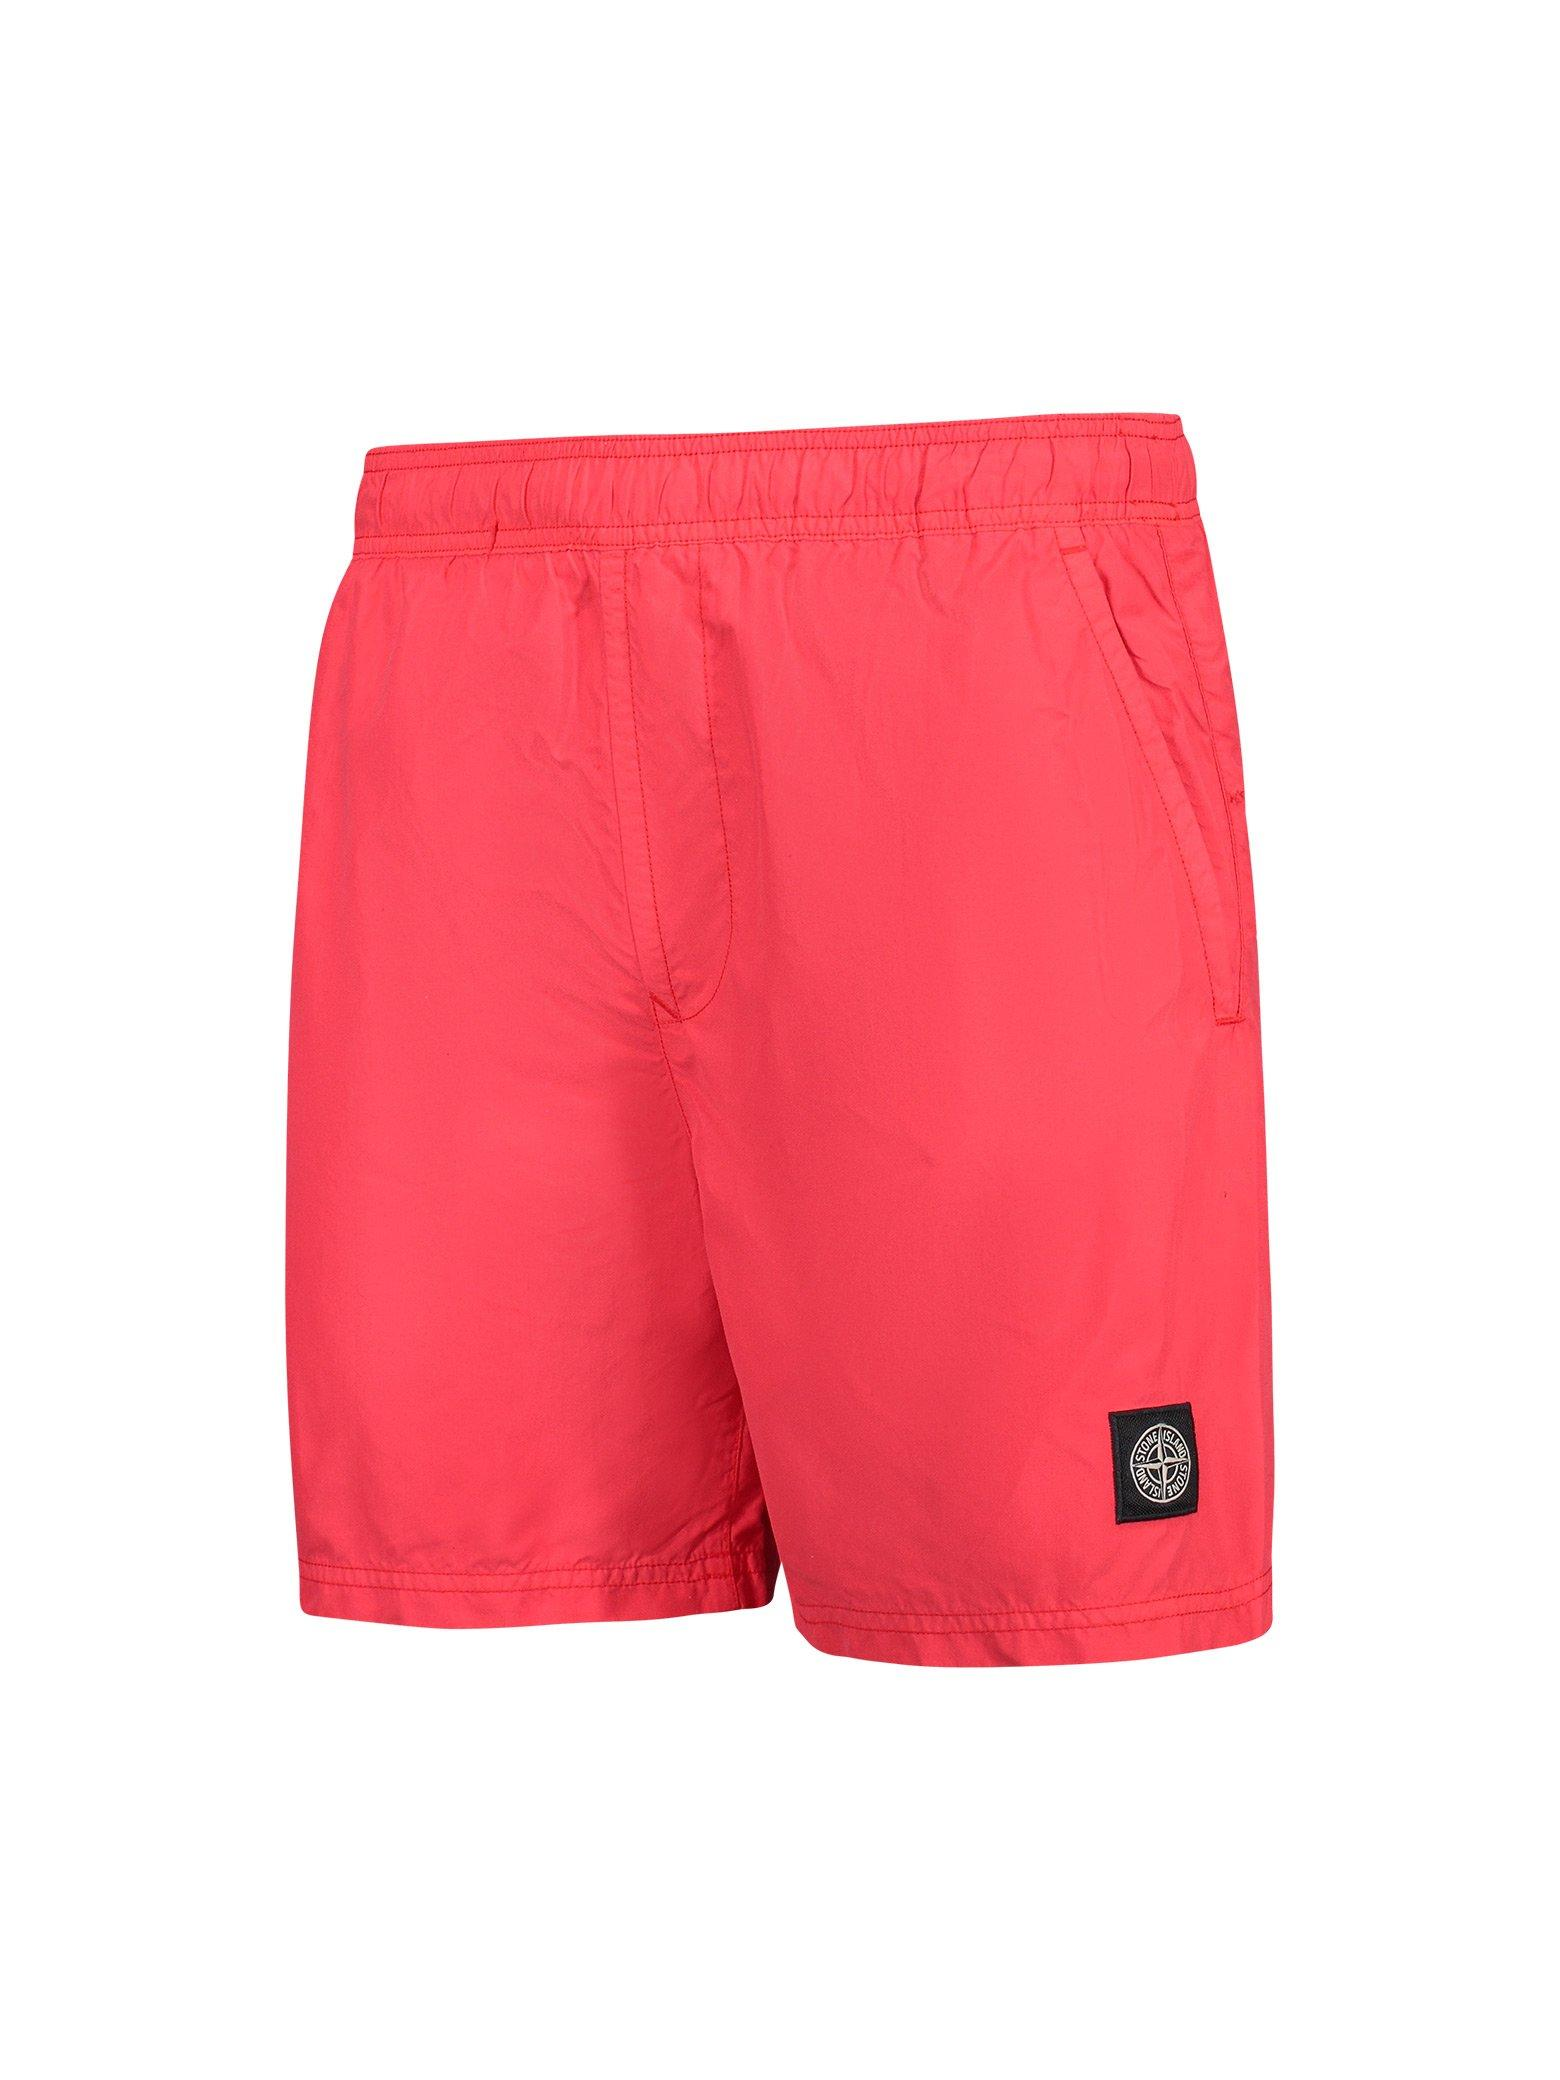 033a4c3754a4e Stone Island Swimming Trunks in Pink for Men - Lyst